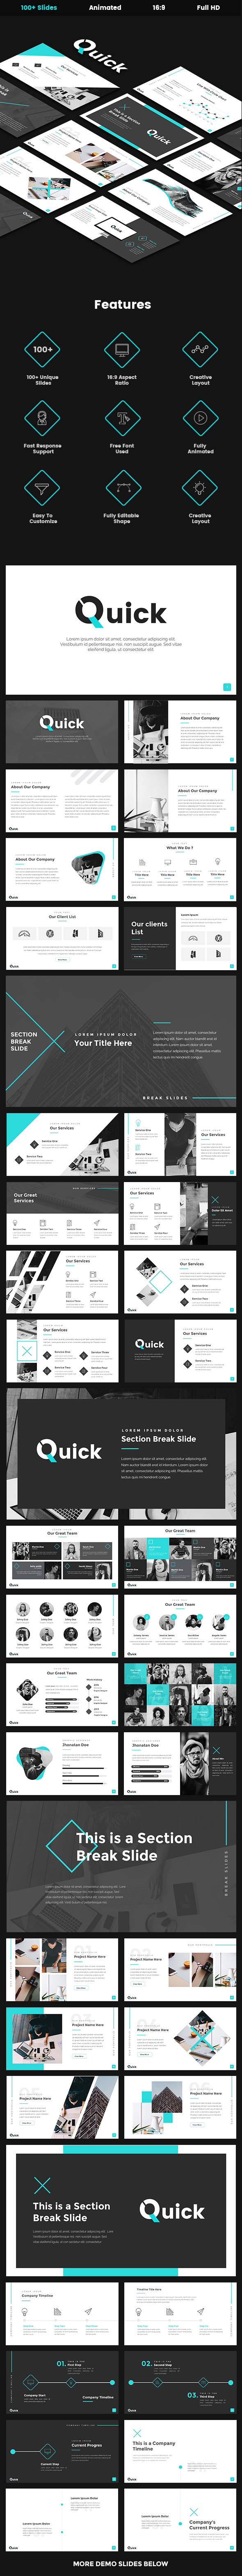 Quick - Creative Powerpoint Template - Creative PowerPoint Templates